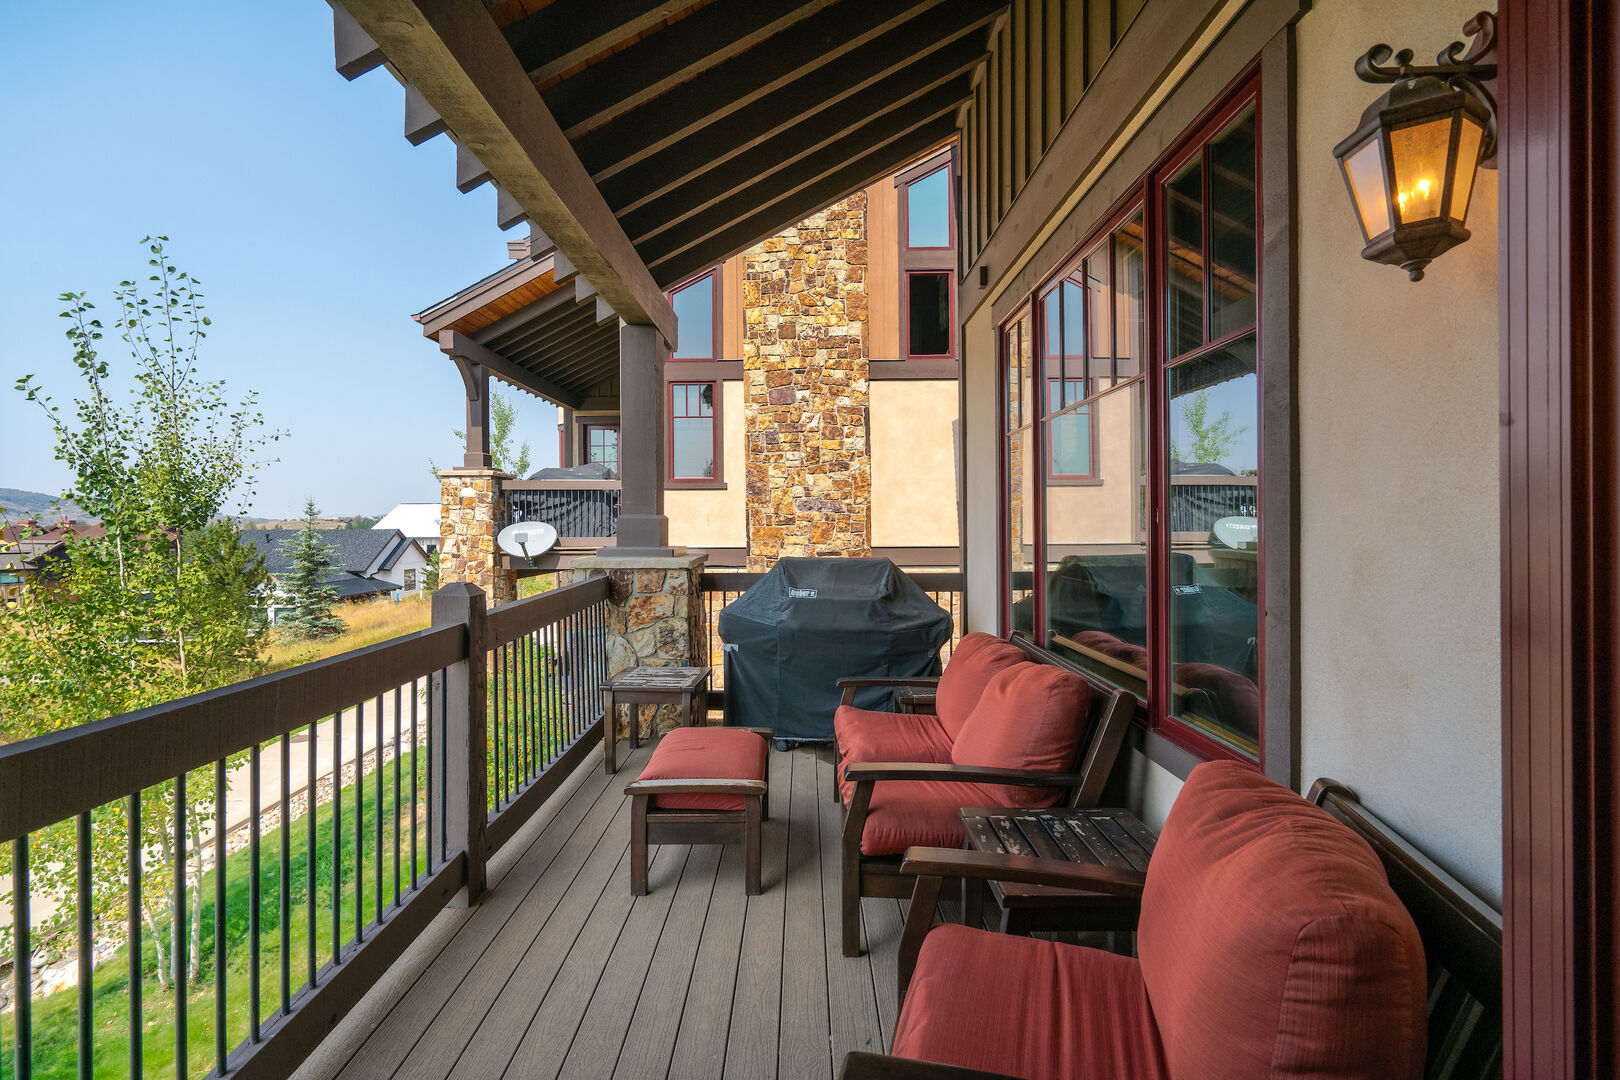 Deck off the dining room with large gas grill